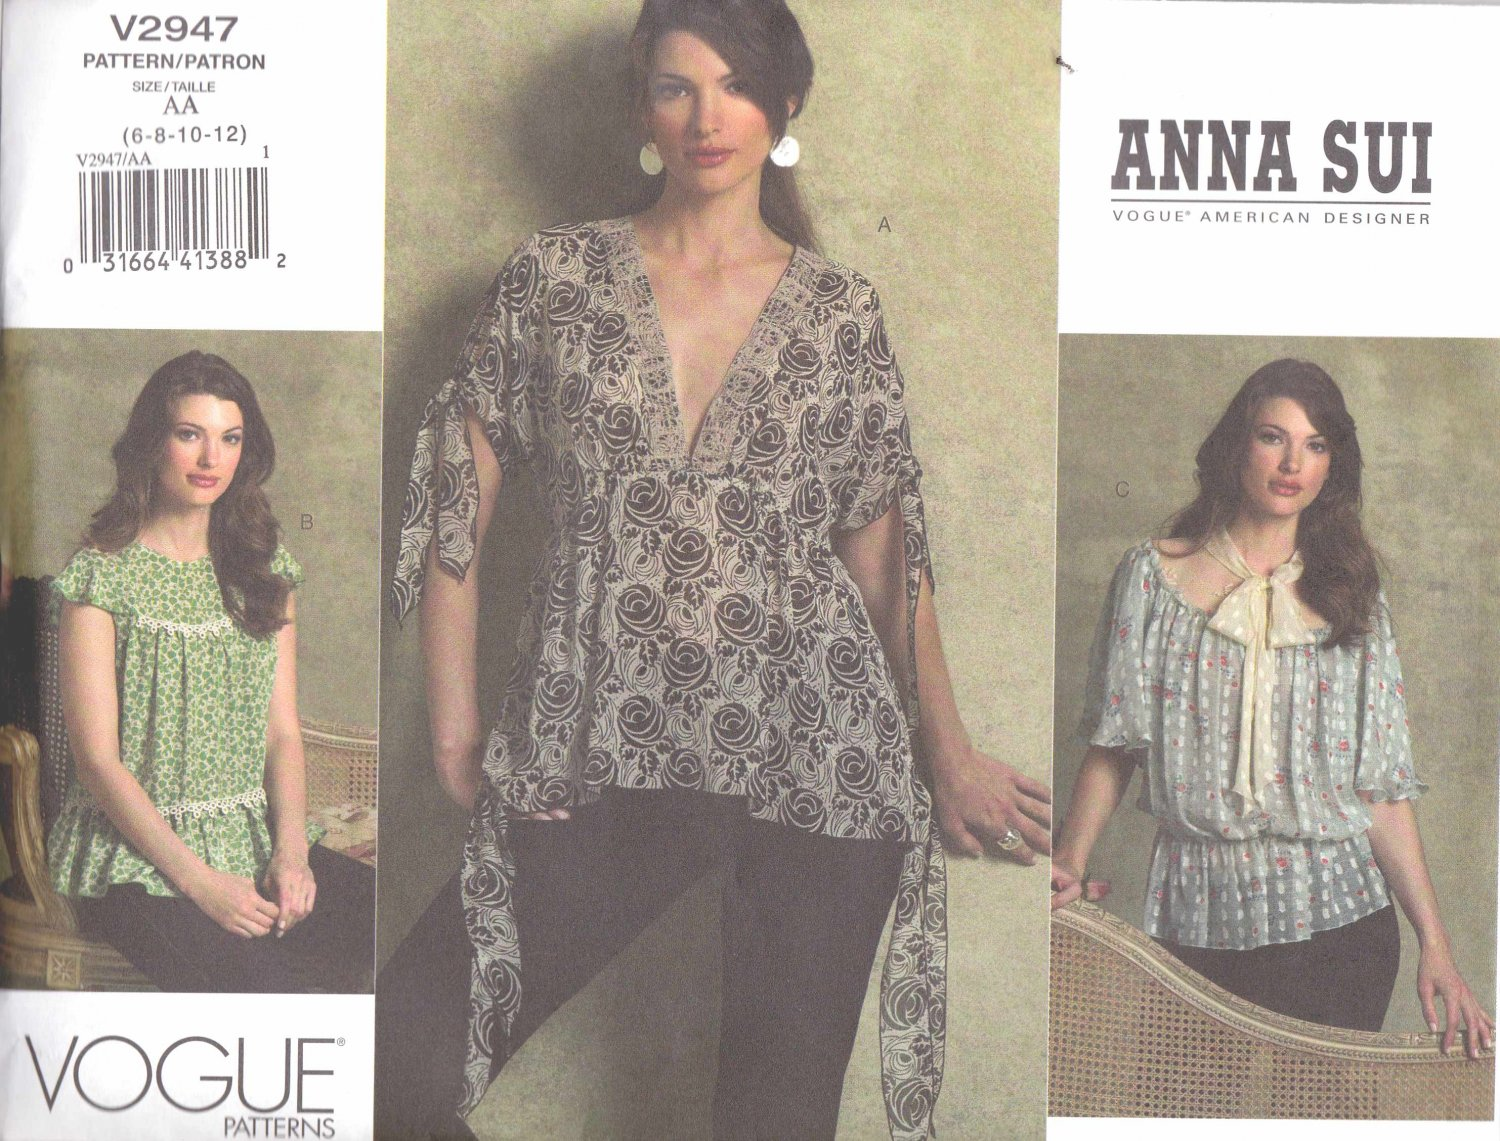 Vogue Sewing Pattern 2947 Misses Size 14-20 Anna Sui Loose Fitting Raised Waist Baby Doll Blouses